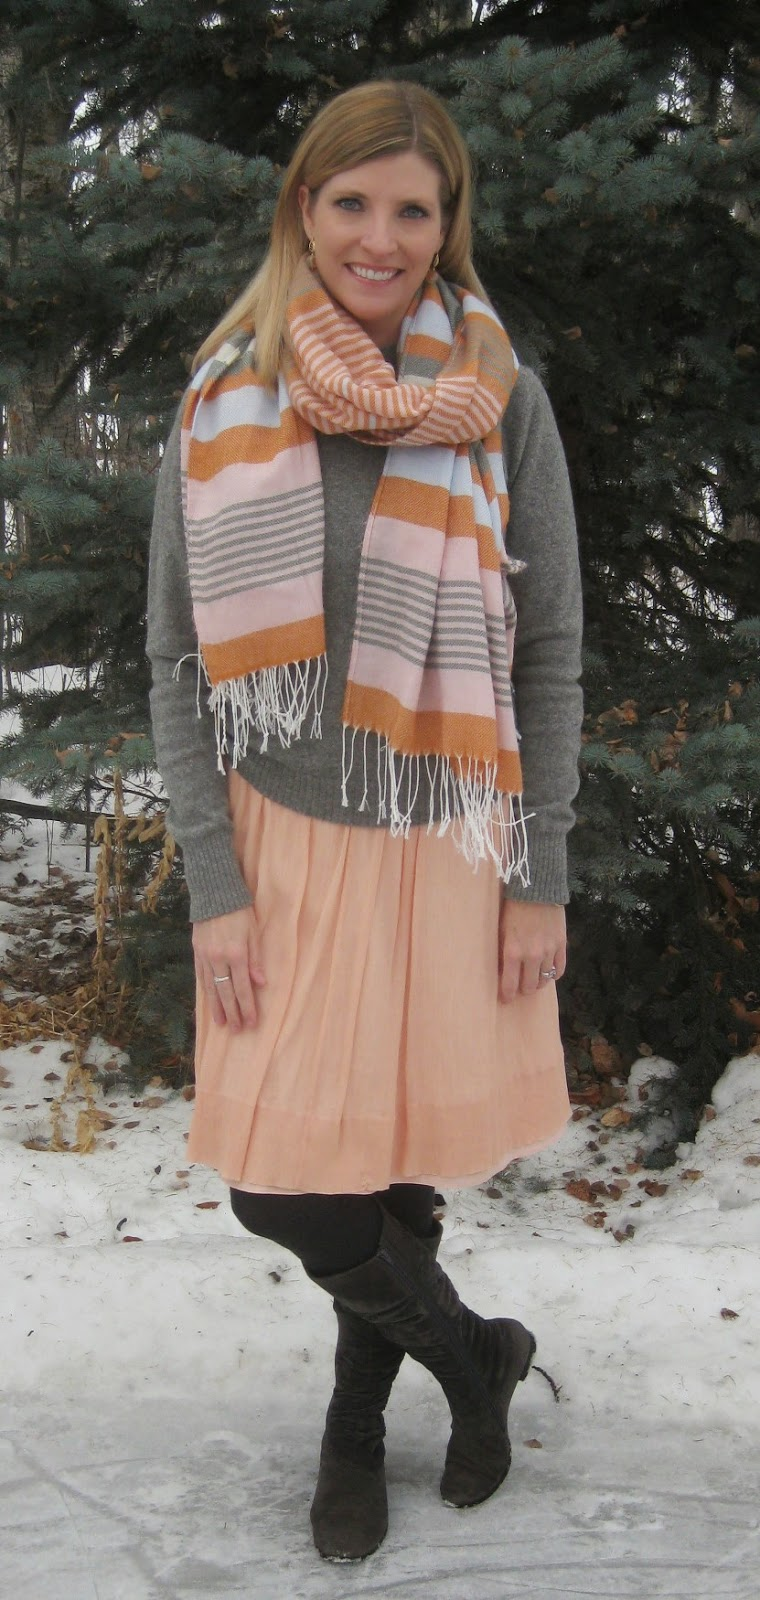 VV Boutique Style: Maxi Meets Graphic Tee